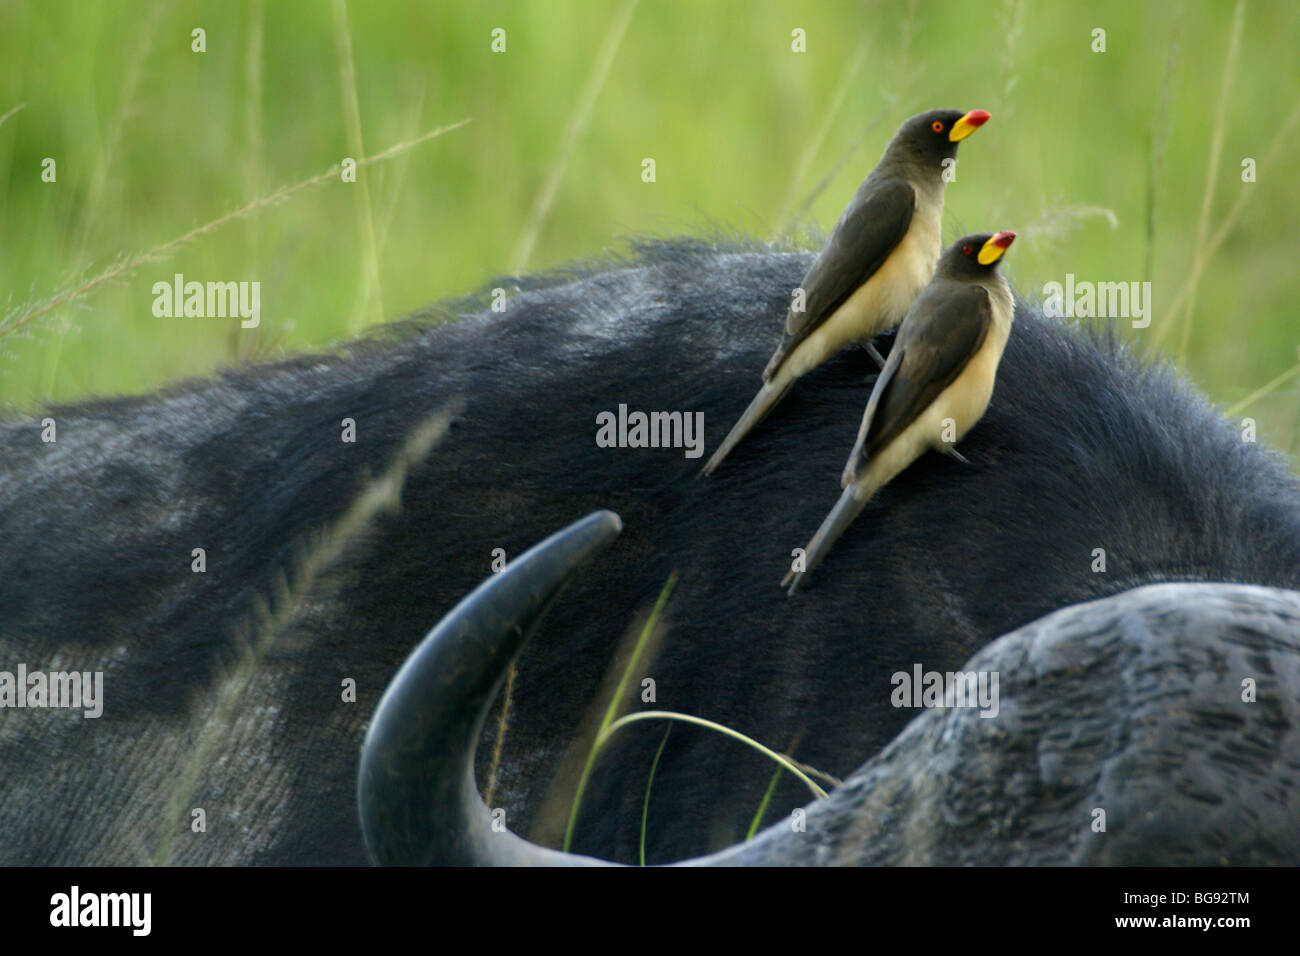 Yellow-oxpeckers sur buffle, Masai Mara, Kenya Photo Stock